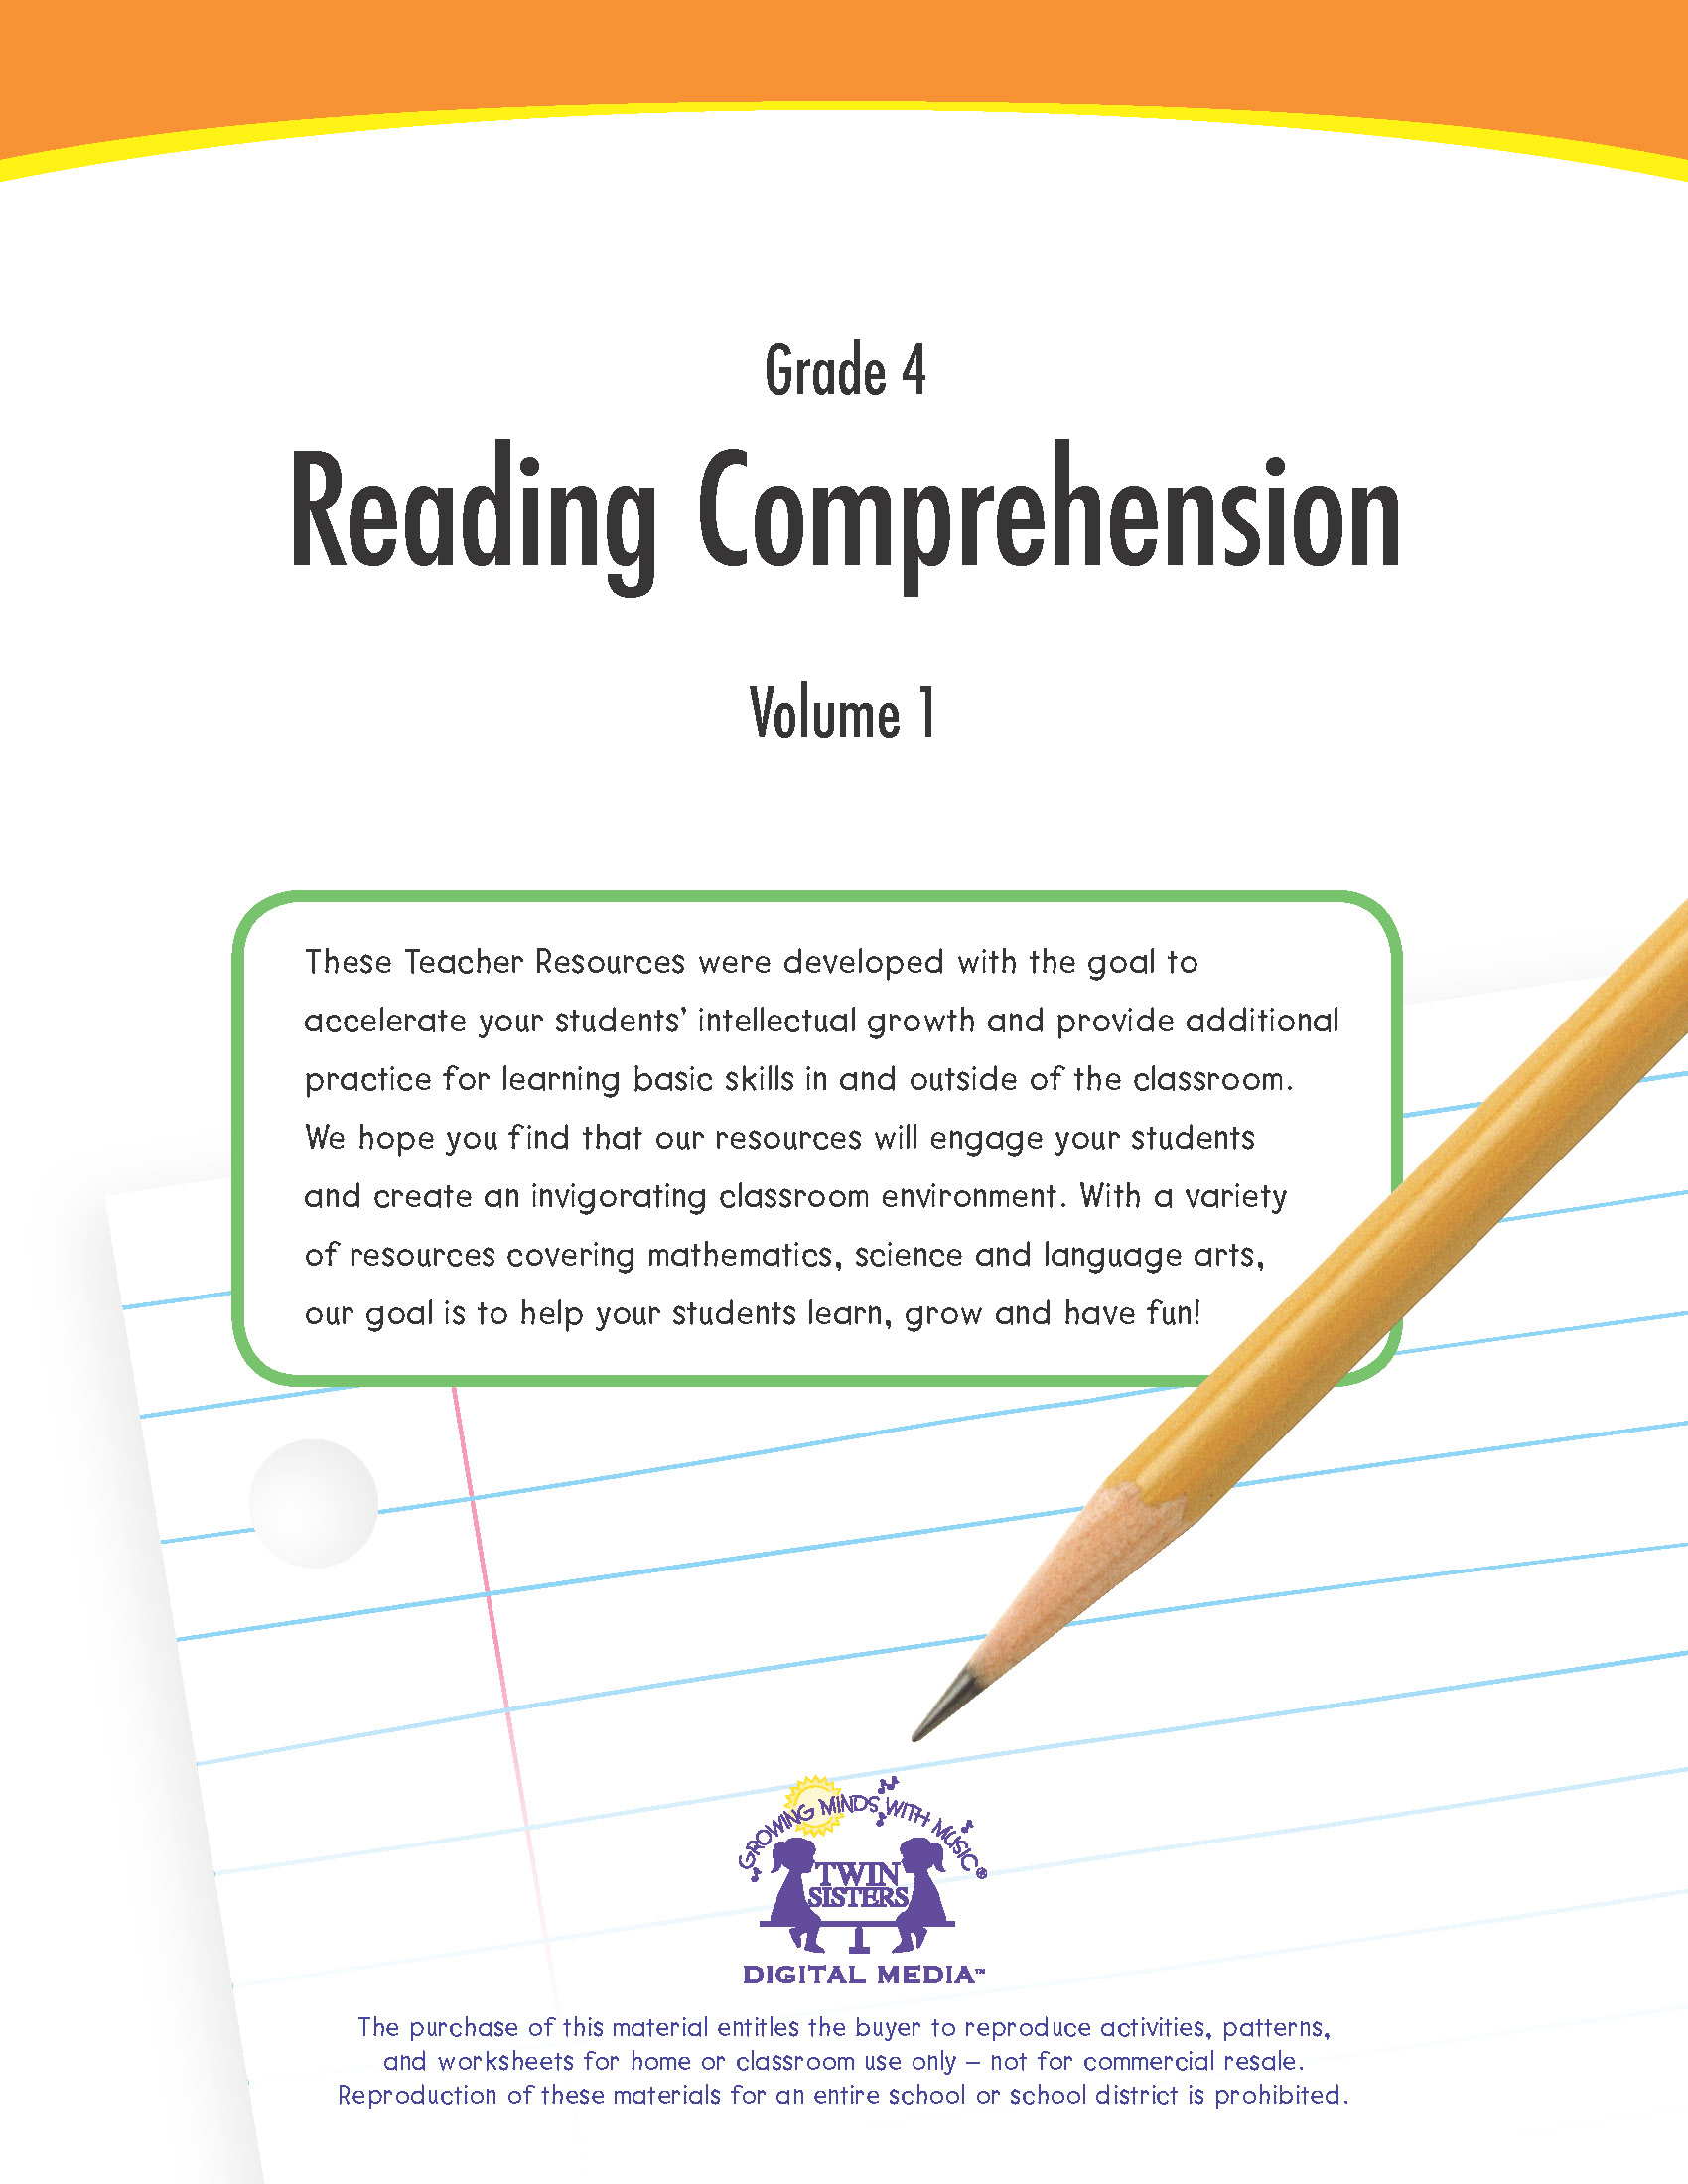 Grade 4 Reading Comprehension Volume 1